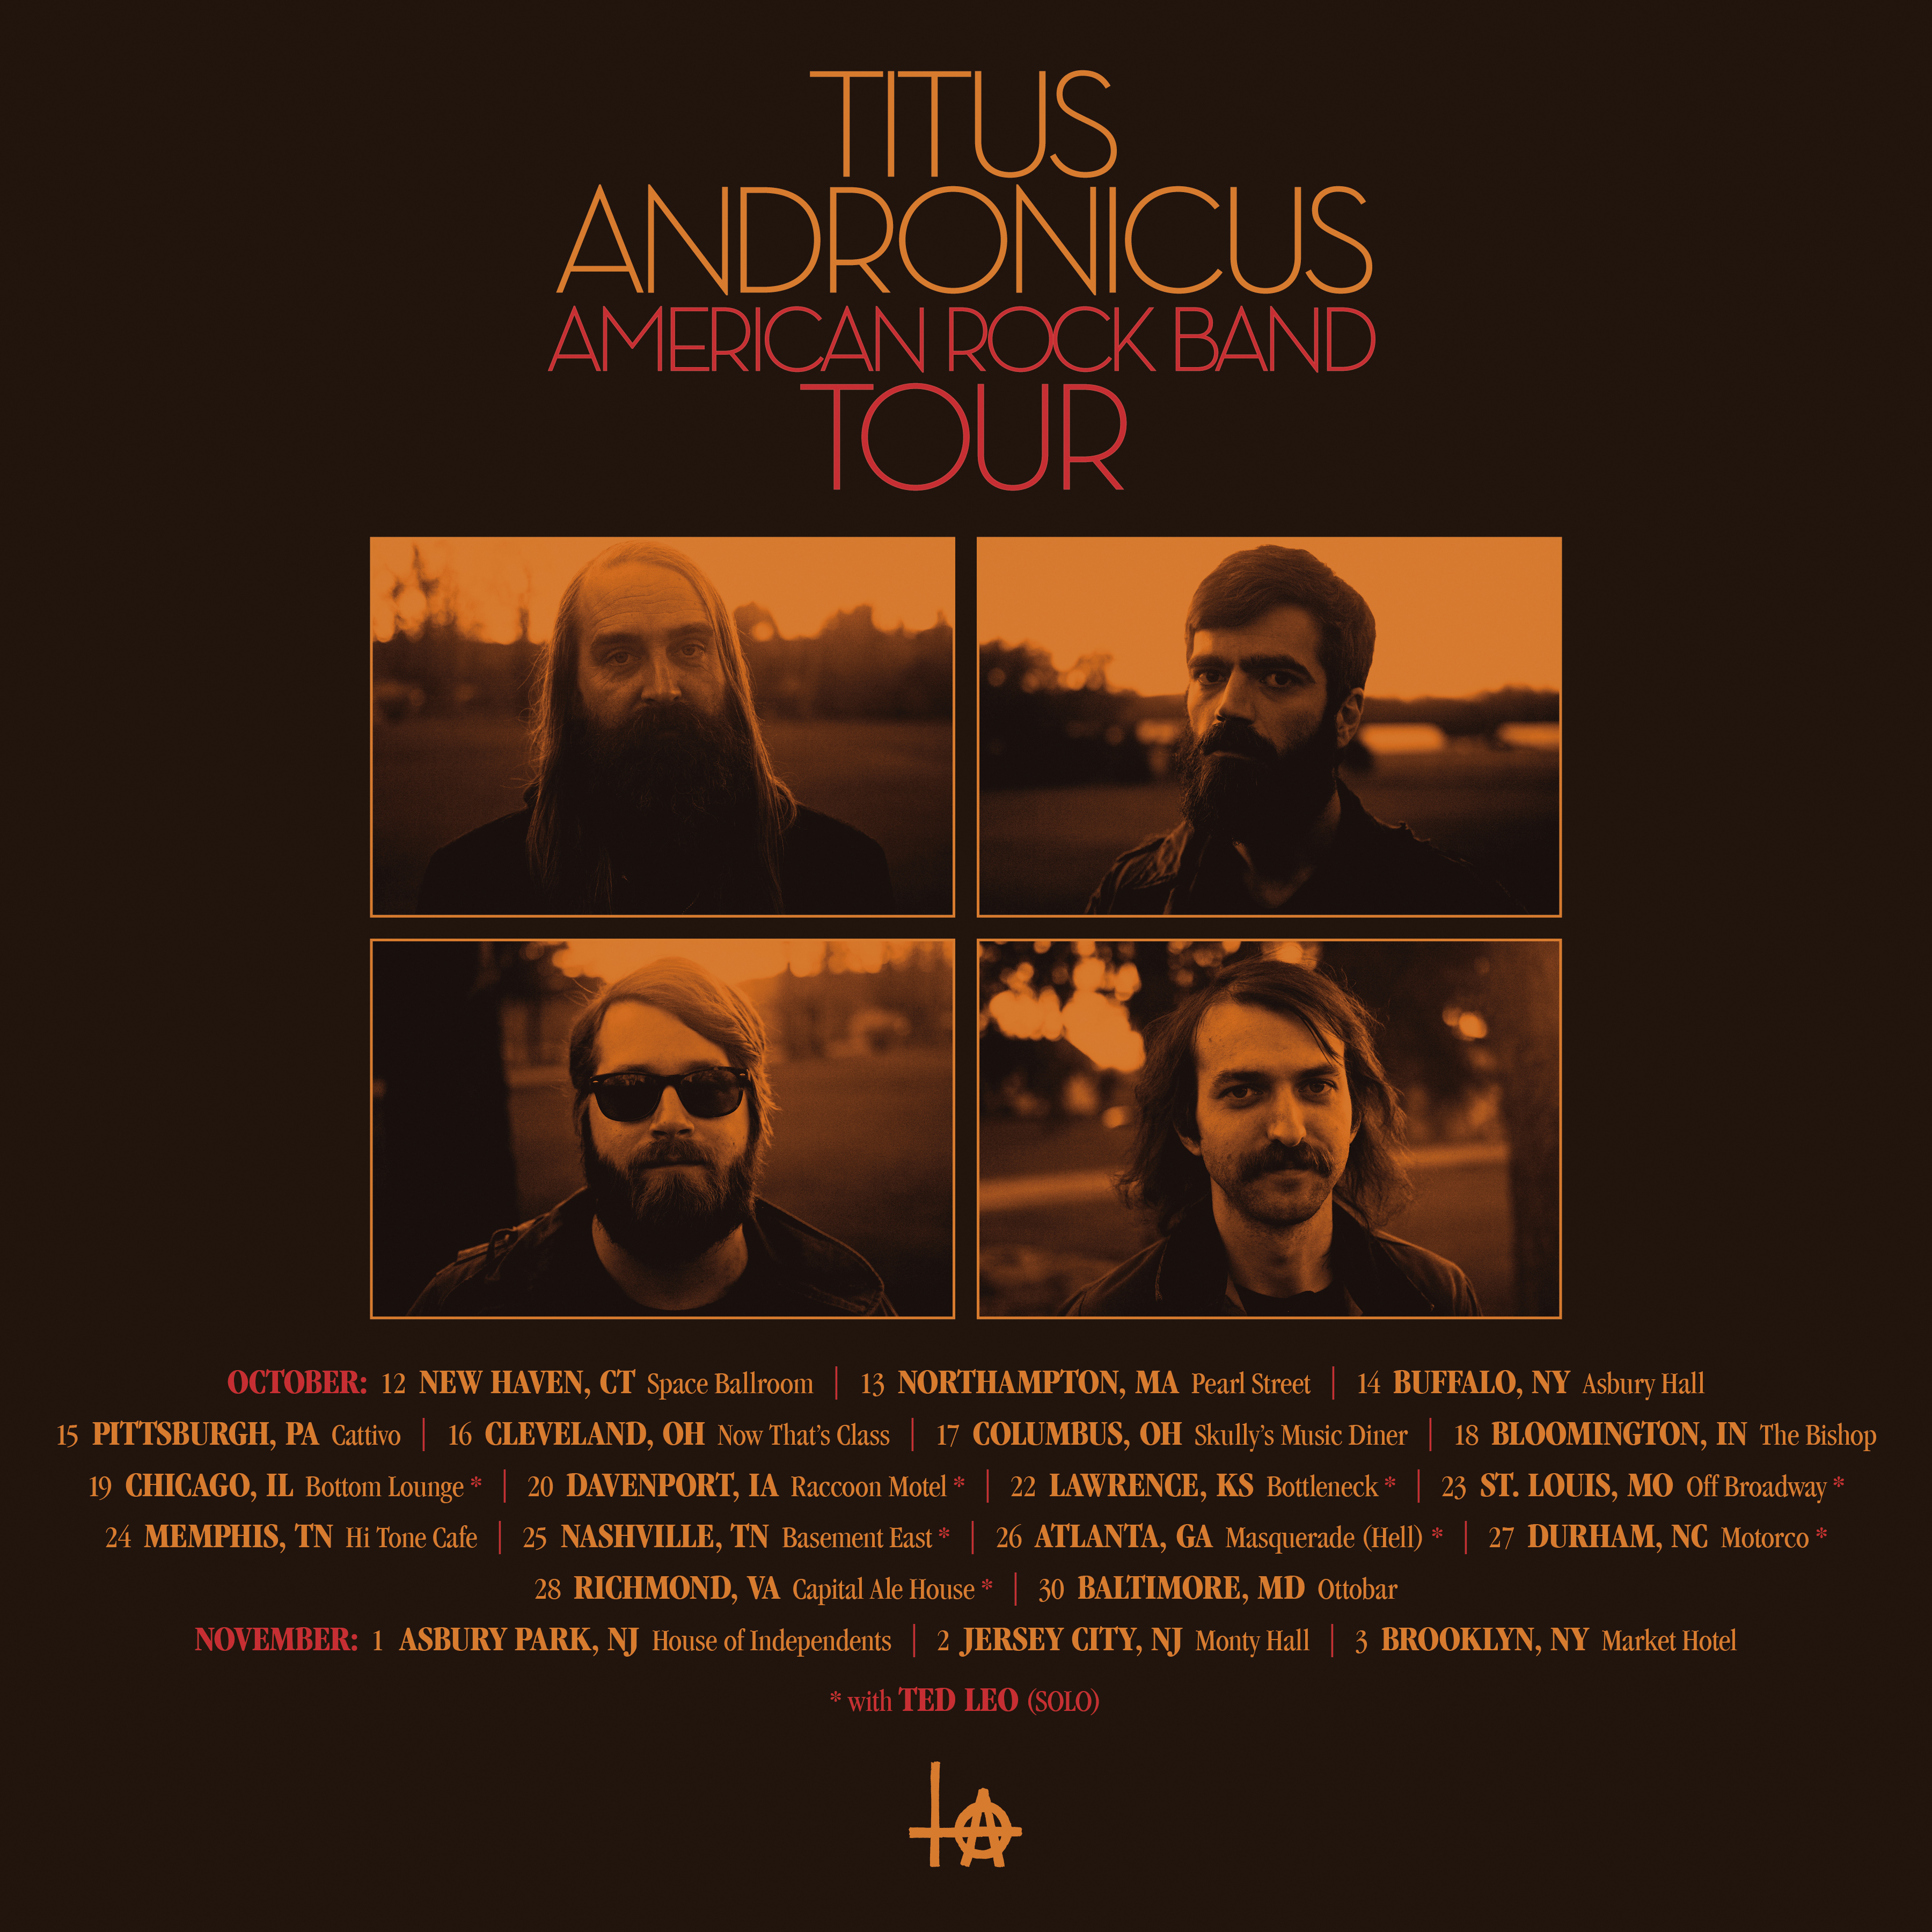 Titus Andronicus American Rock Band Tour Schedule Poster